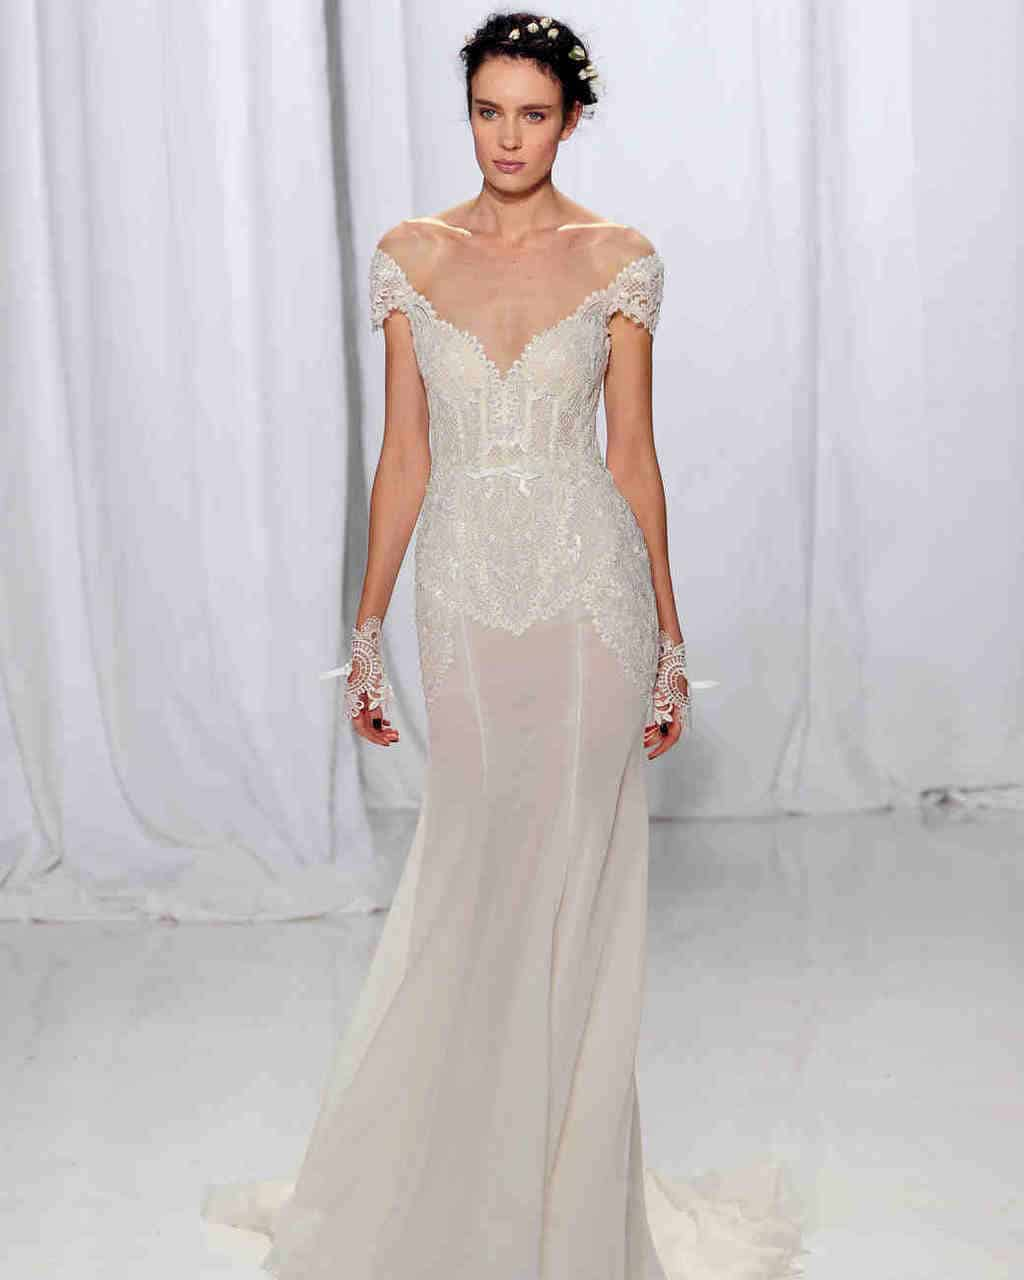 reem-acra-wedding-dress-fall2017-6203351-004_vert-1